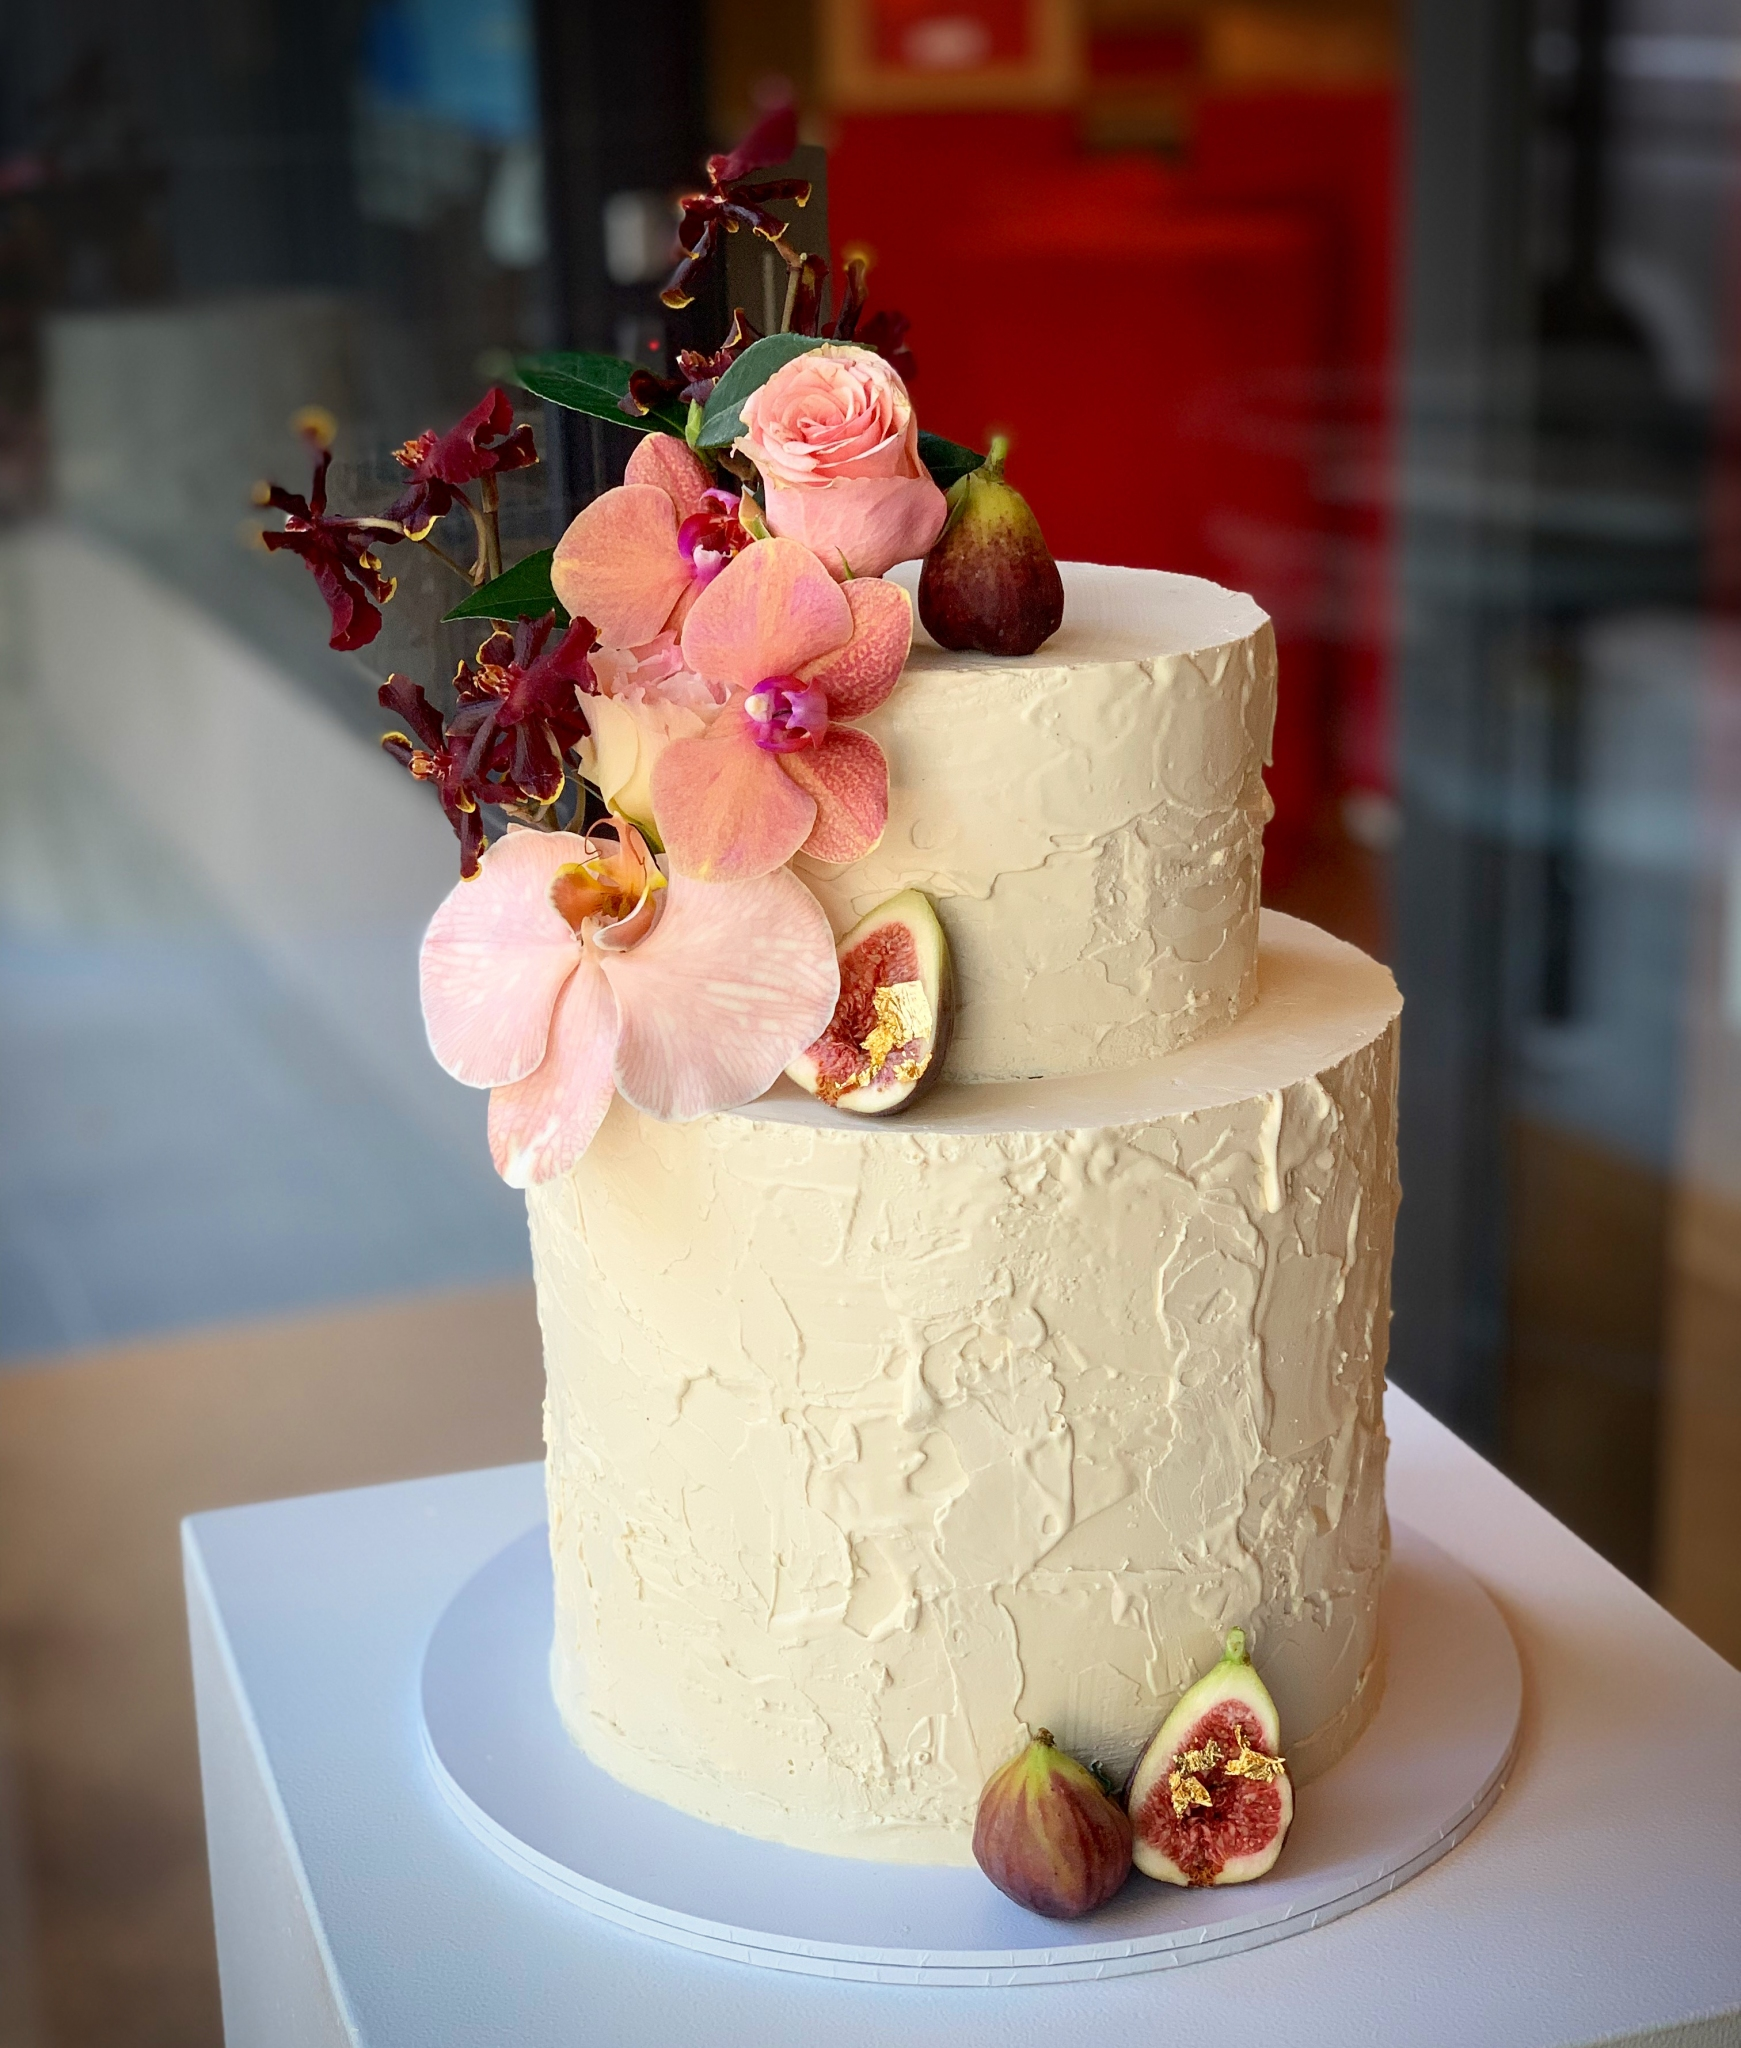 Edible Ethics How To Order A Vegan Wedding Cake Polka Dot Bride